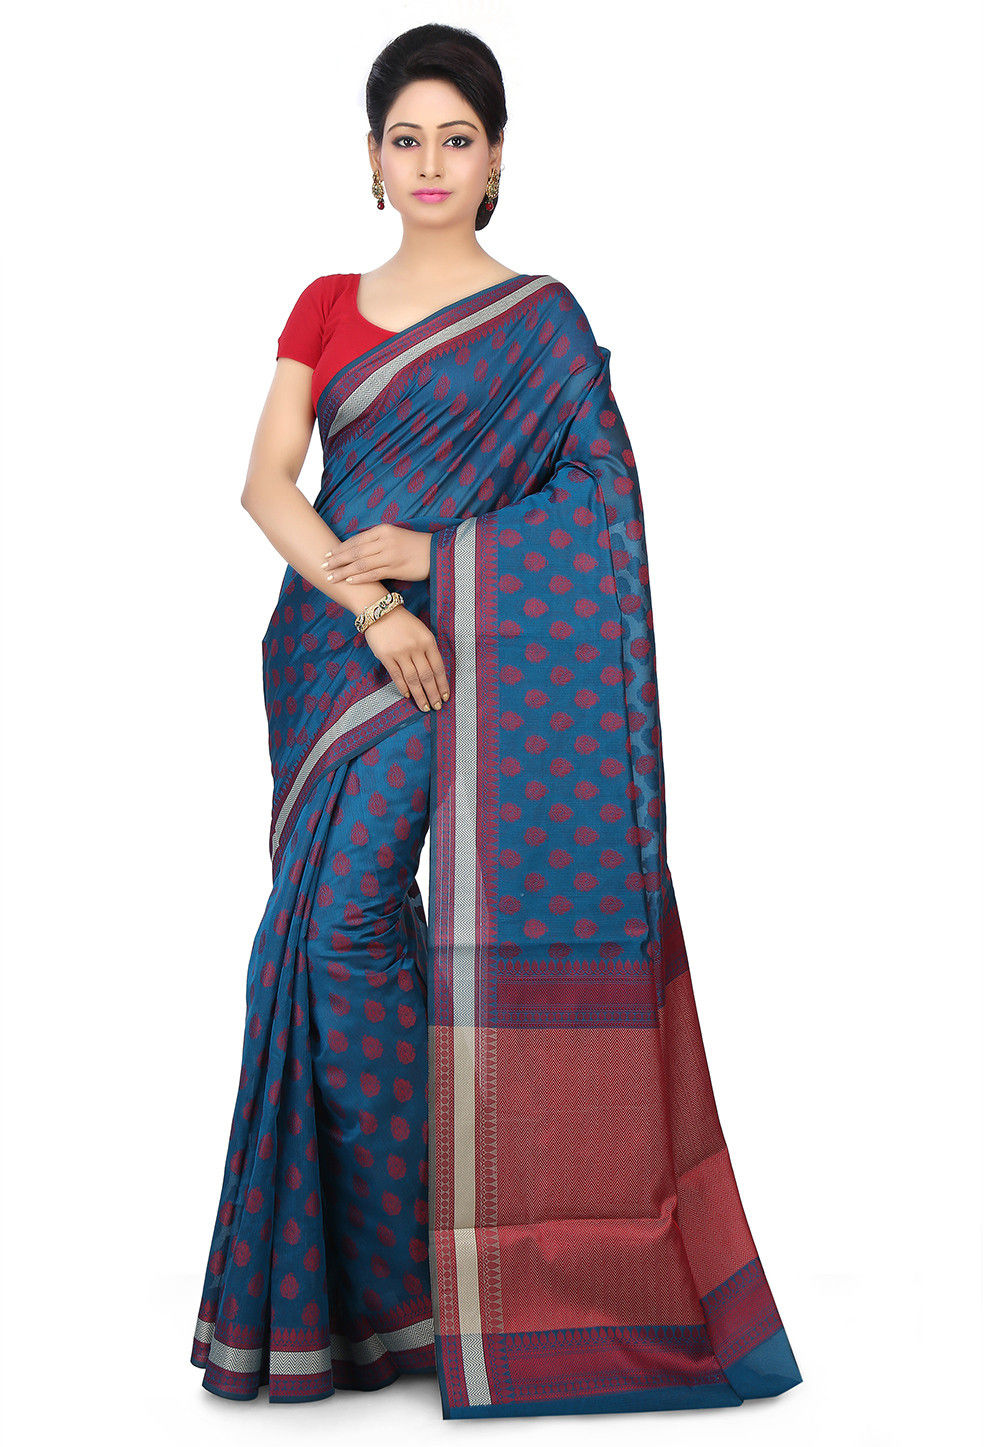 Woven Chanderi Silk Saree in Teal Blue